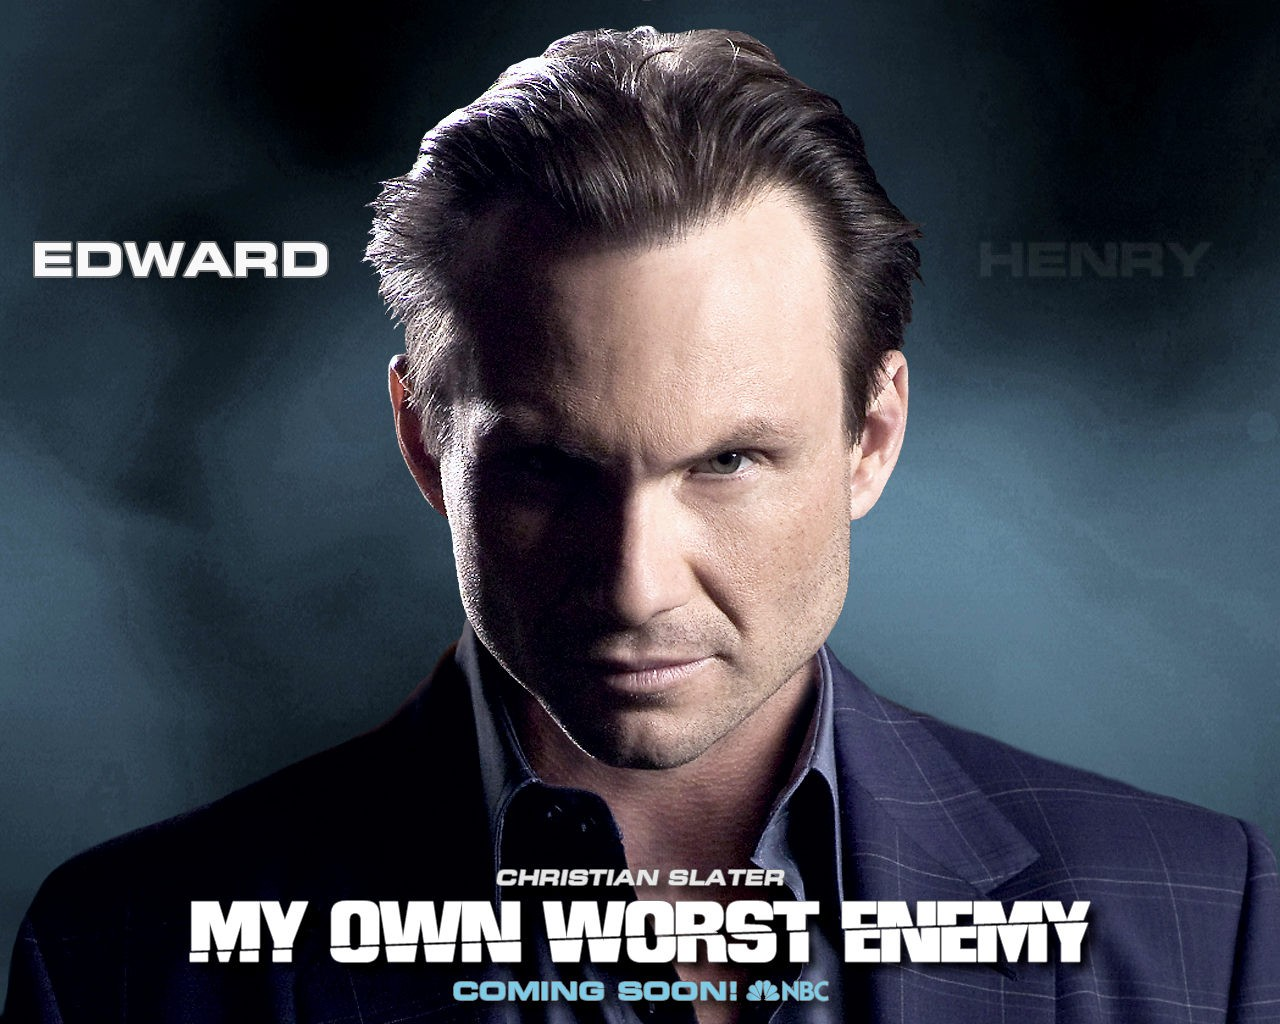 Wallpaper della serie My Own Worst Enemy, con Christian Slater